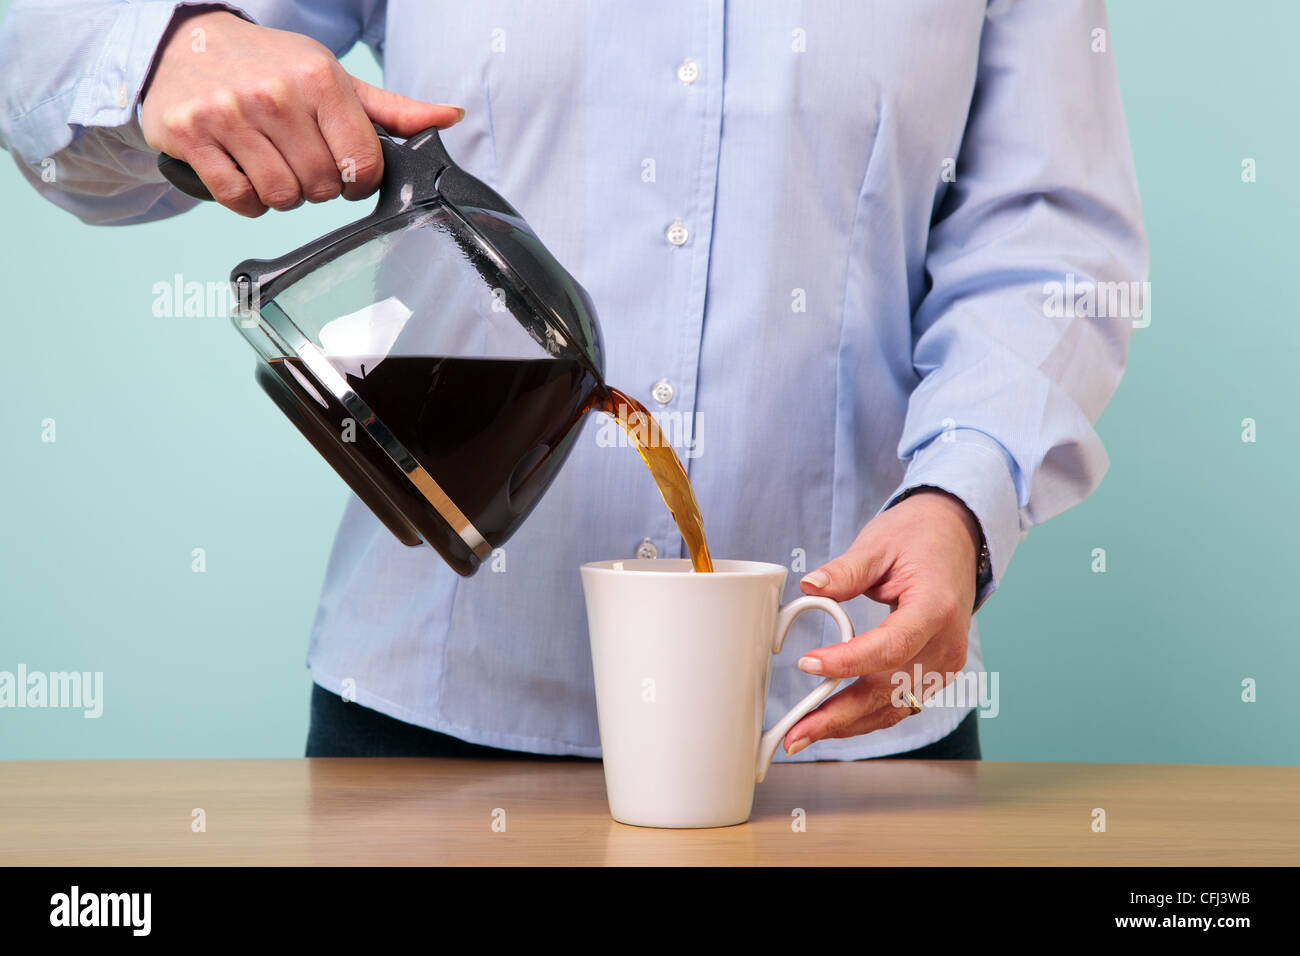 Photo of a woman on her break pouring herself a mug of hot filtered coffee from a glass pot. - Stock Image